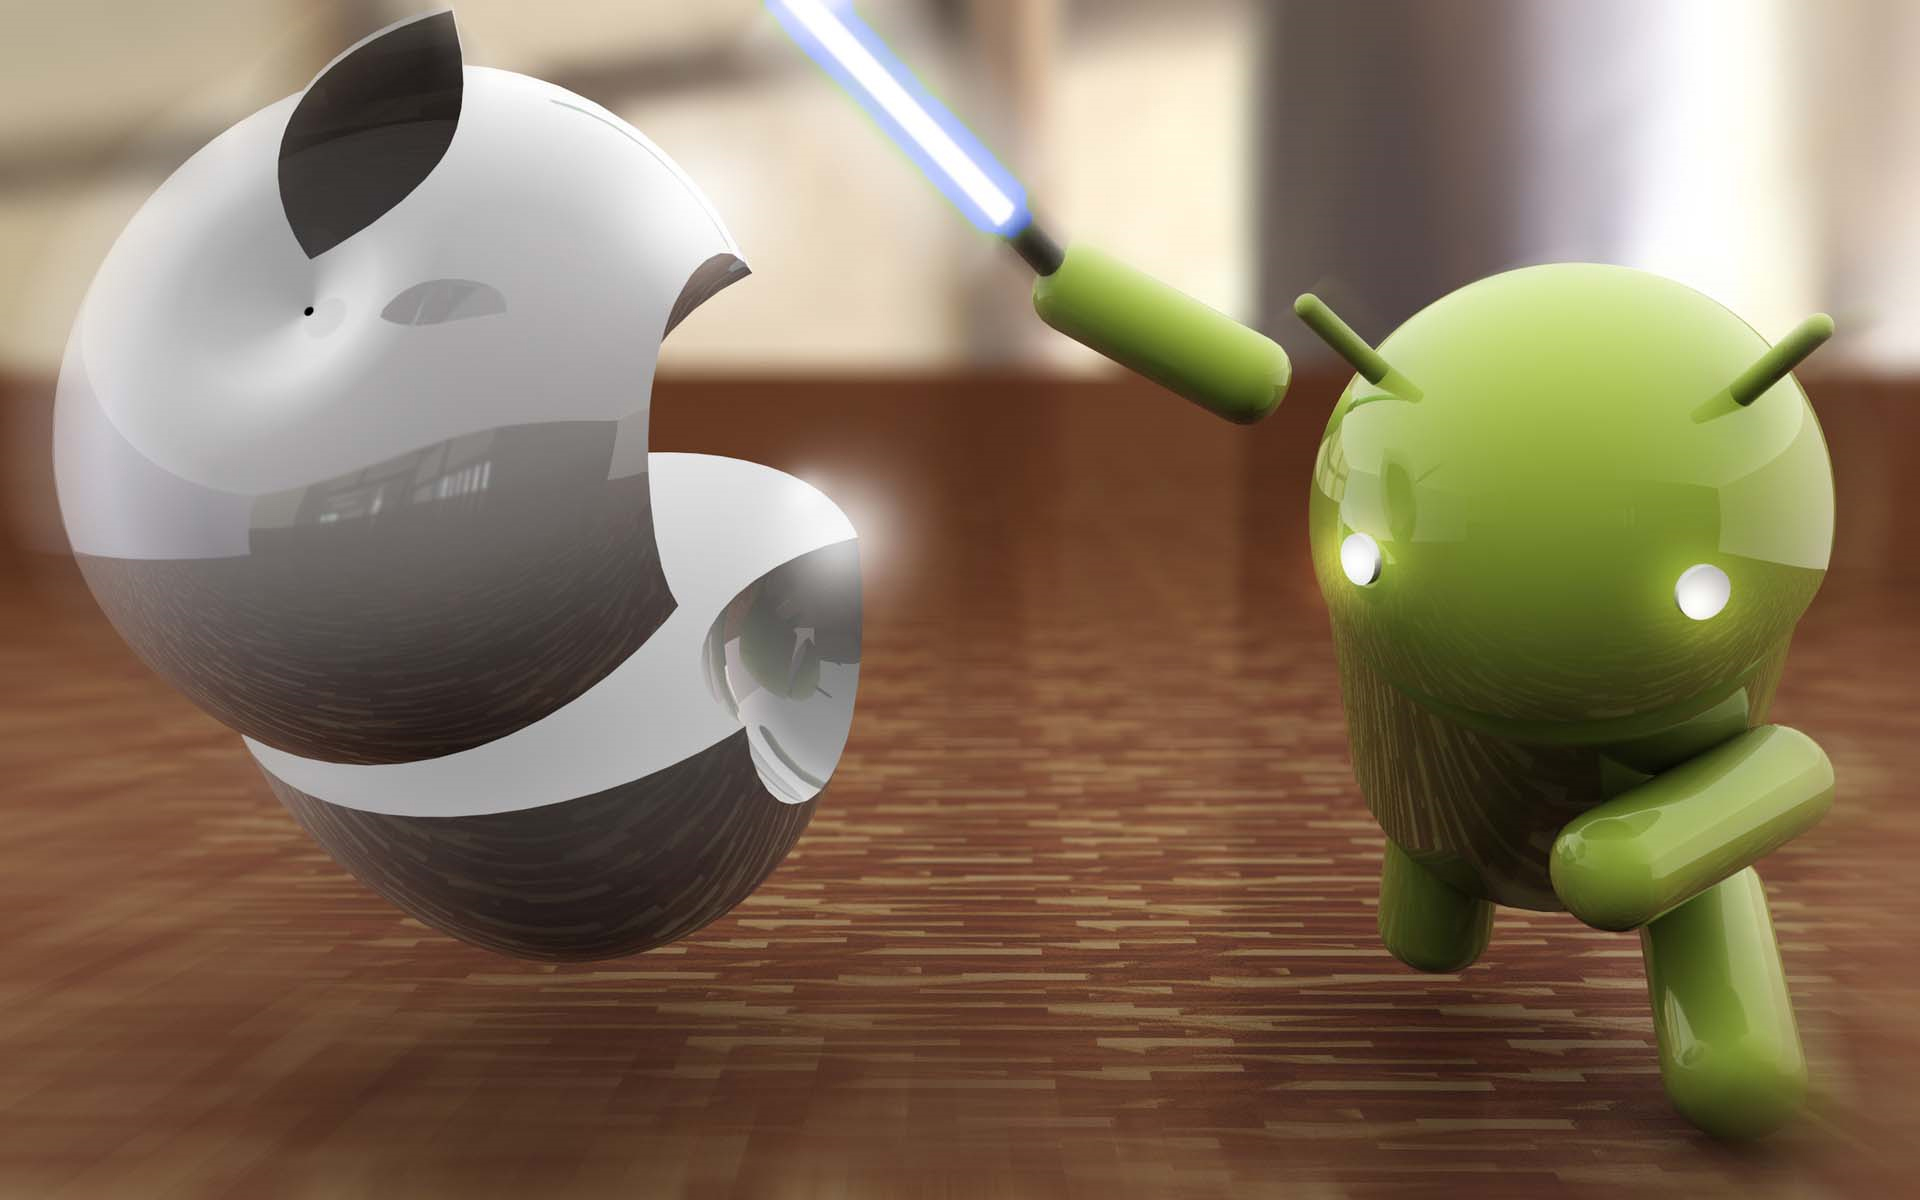 androidvsapple